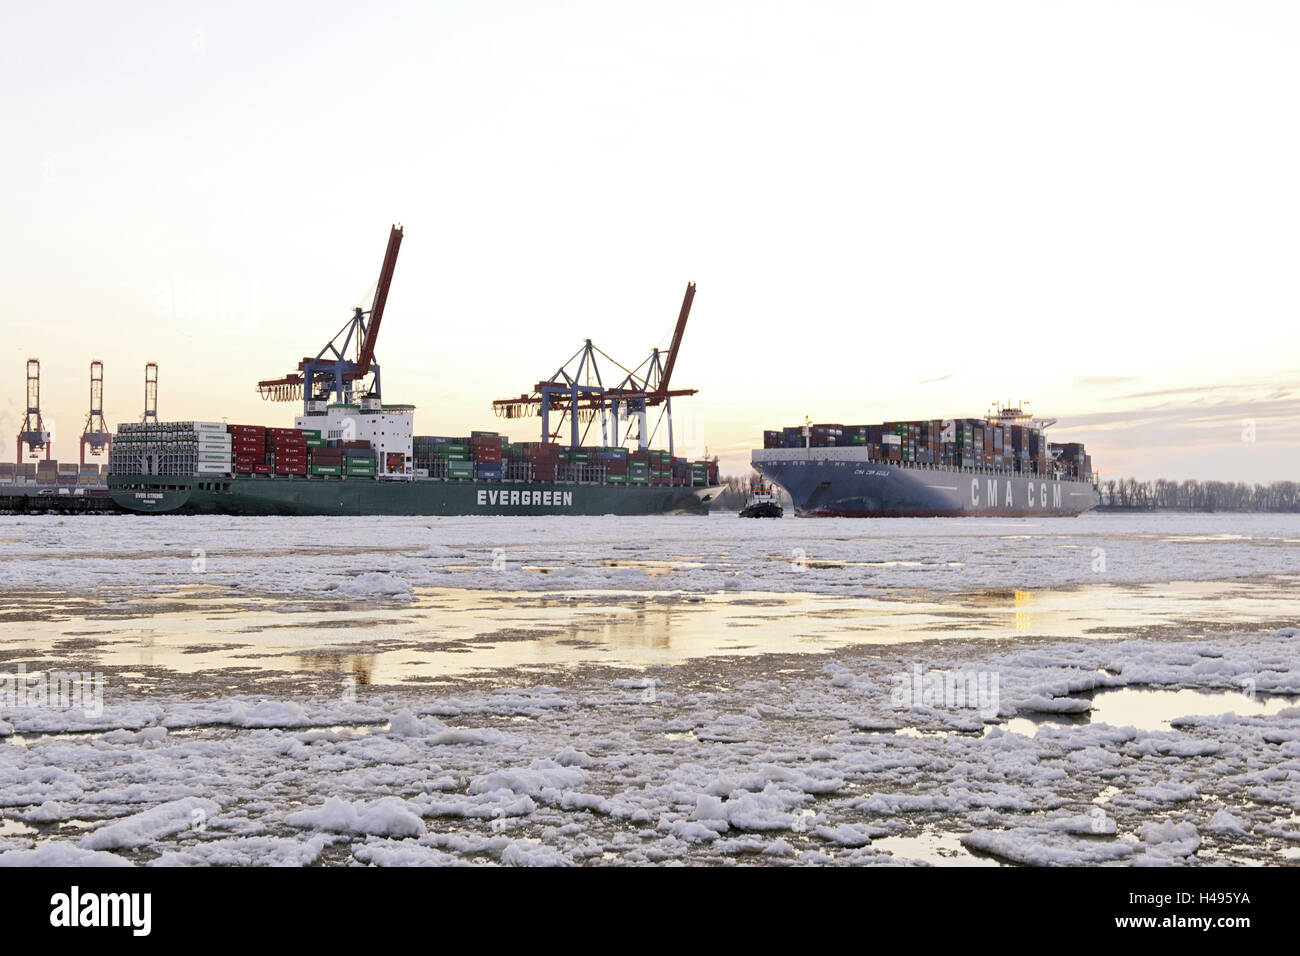 Container ship doing a turning manoeuvre, ice drift, floes floating on the Elbe, harbour cranes, Övelgönne, Hanseatic Stock Photo